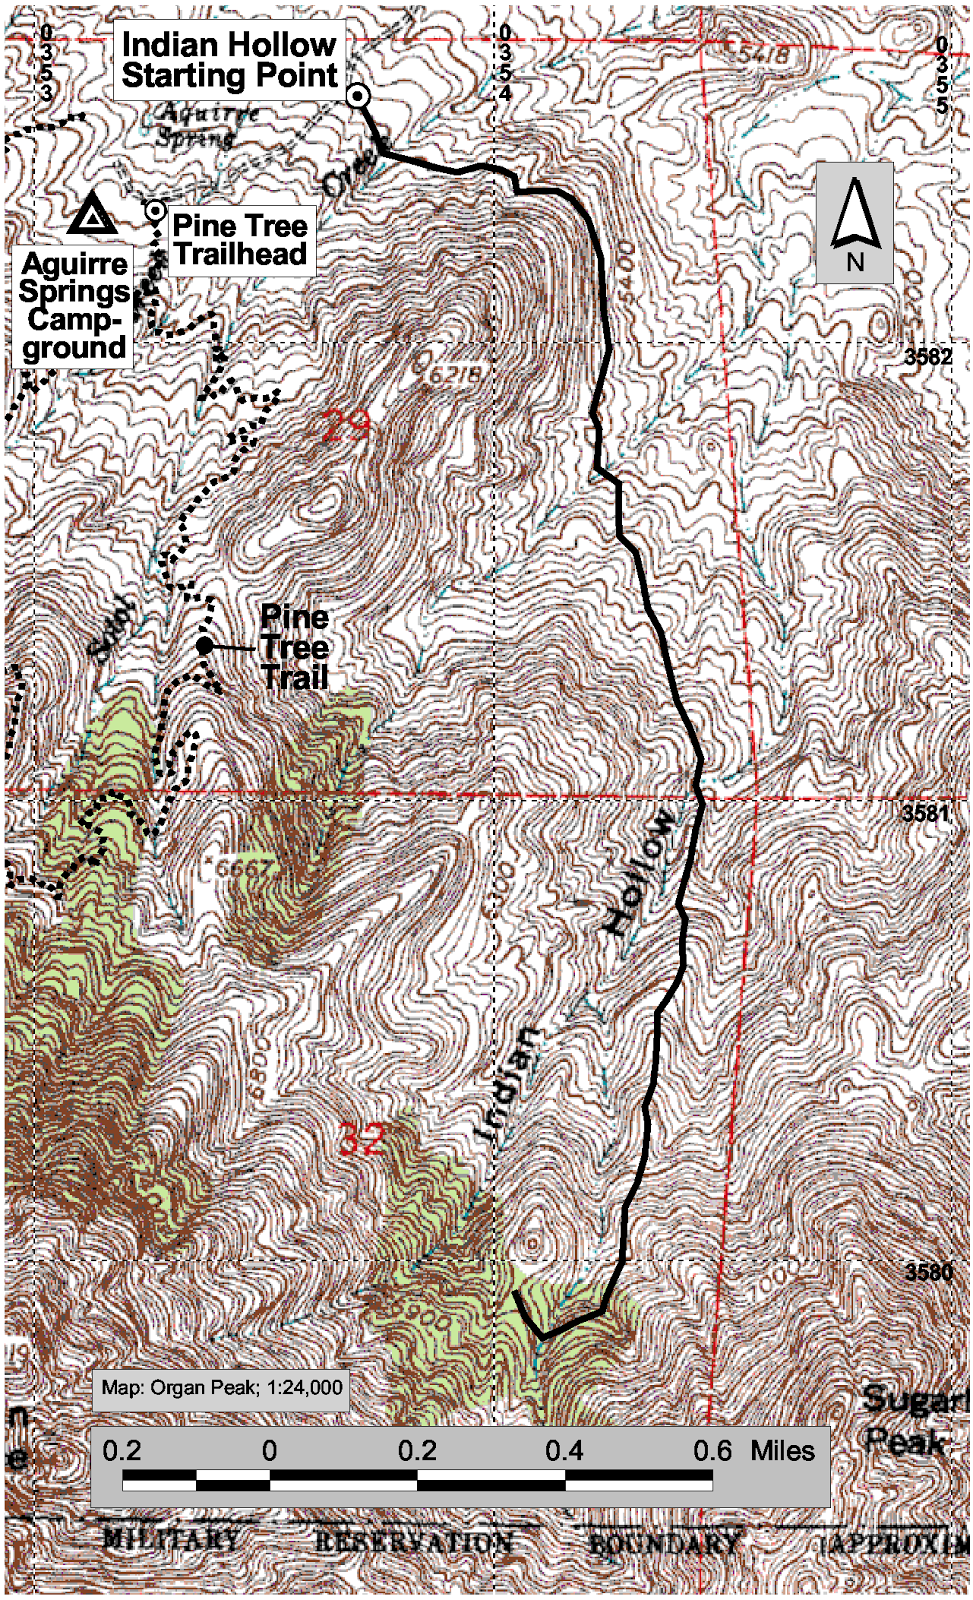 map of indian hollow hiking